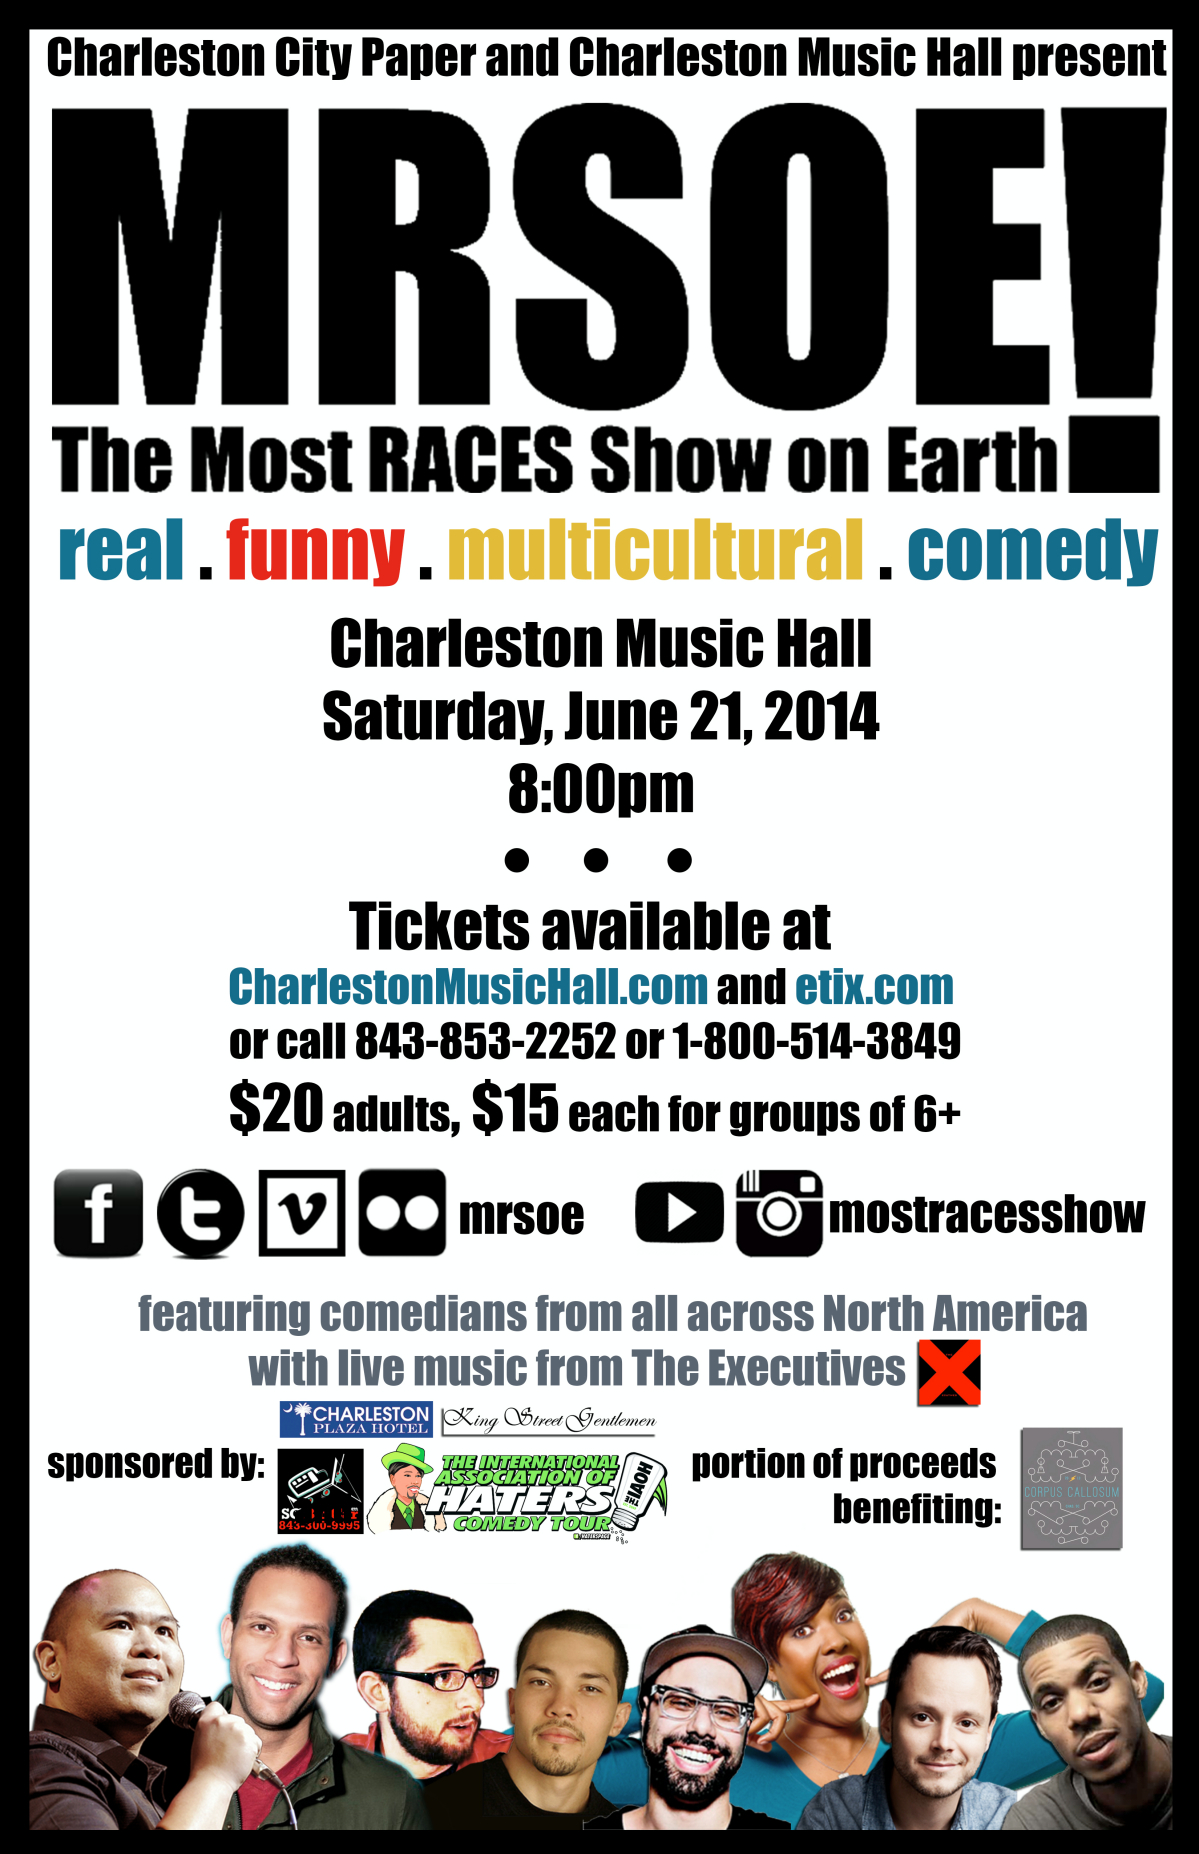 MRSOE! @ The Charleston Music Hall - June 21, 2014 - 8pm